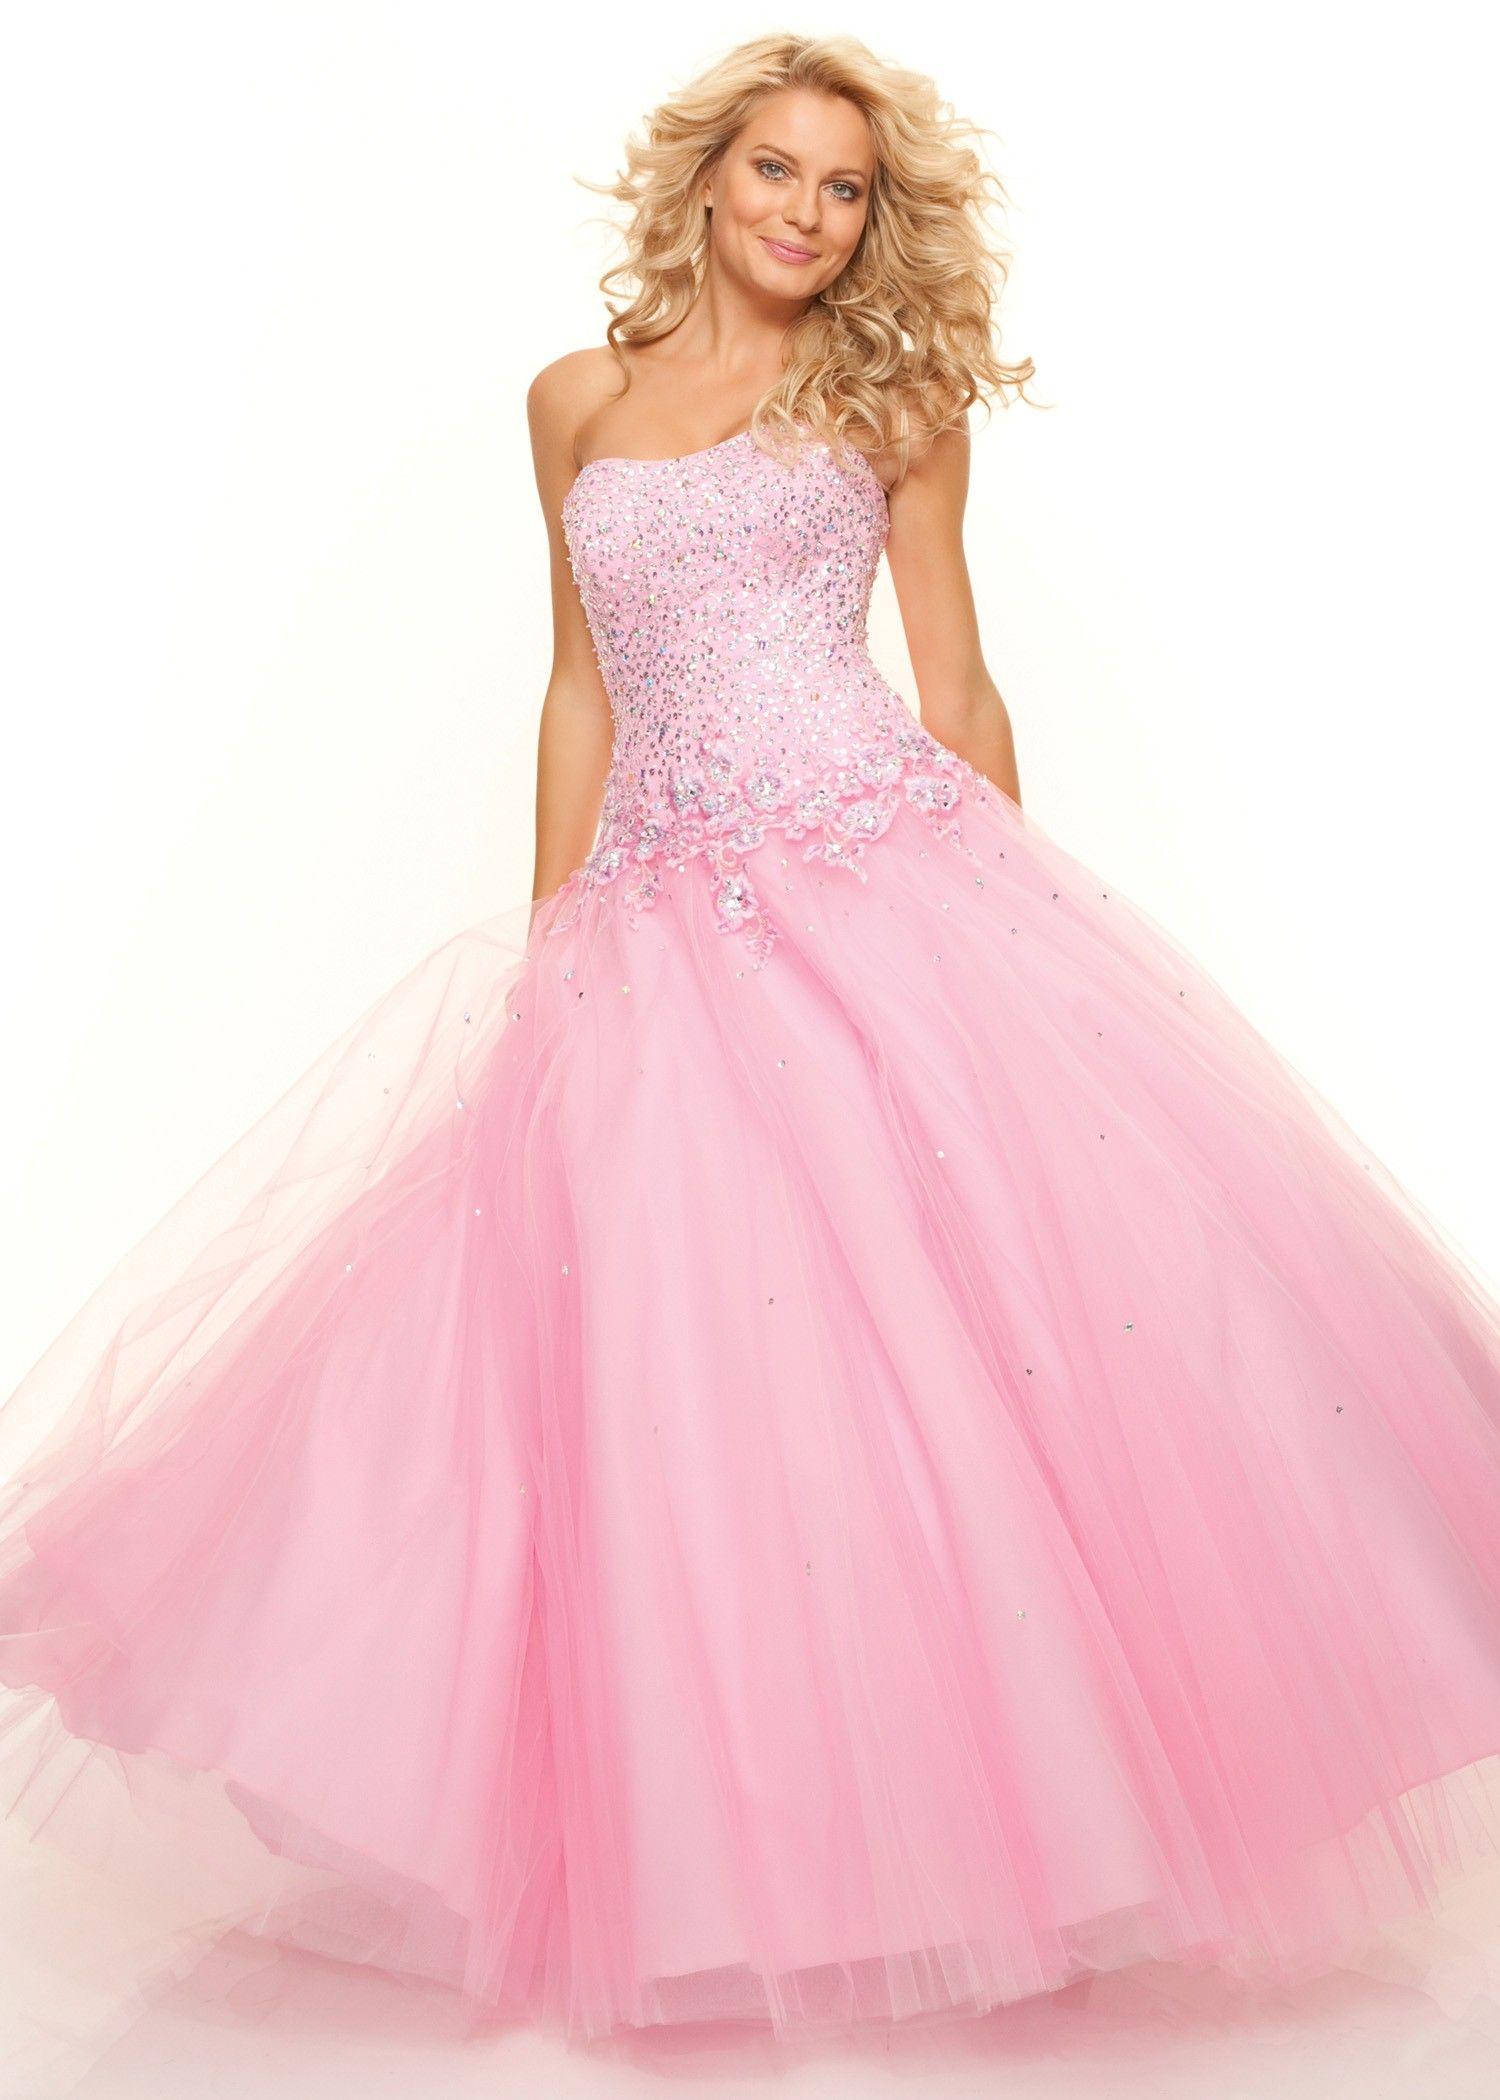 c62fbc3b6a pink ball gown